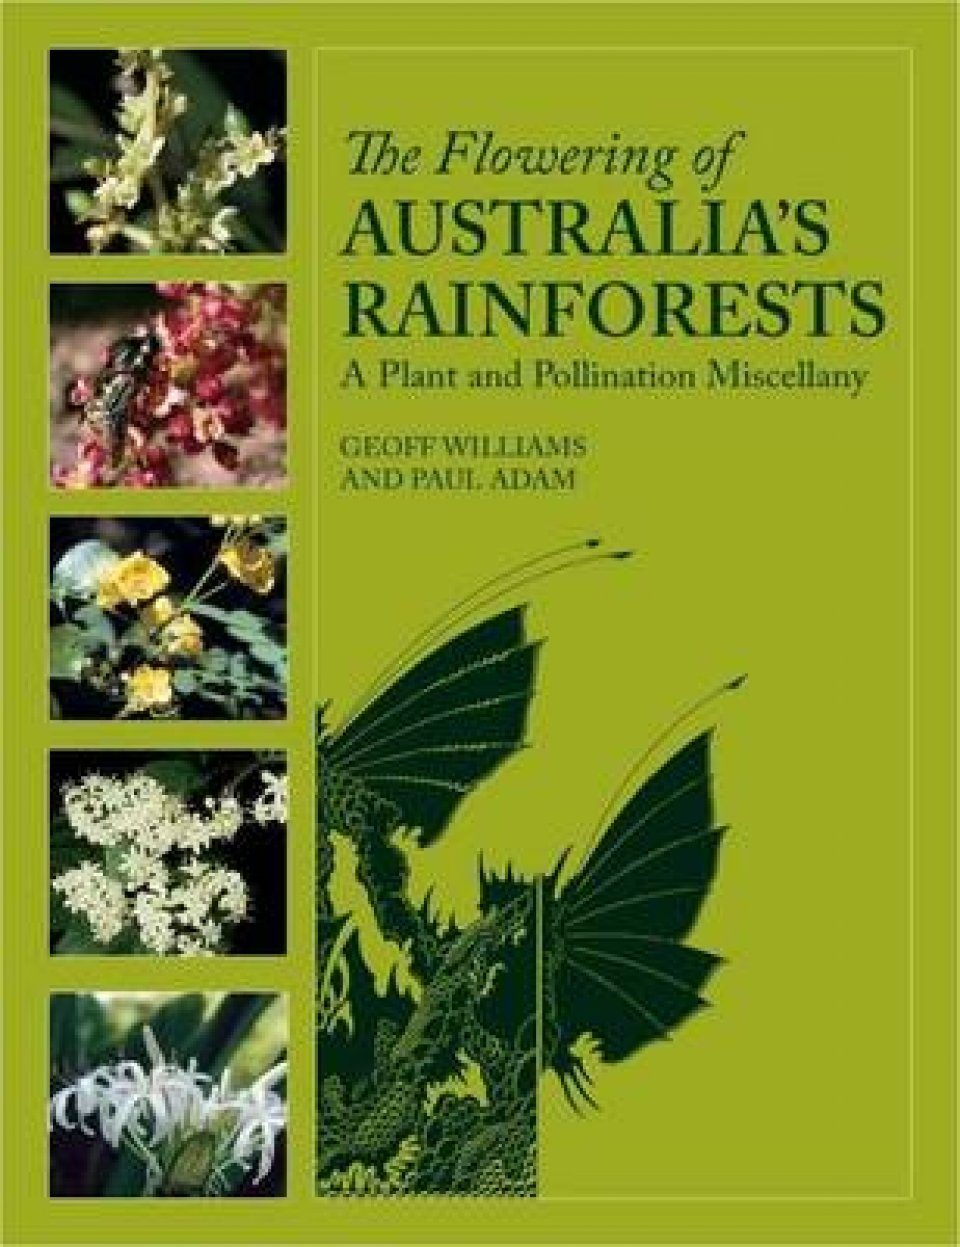 The Flowering of Australia's Rainforests